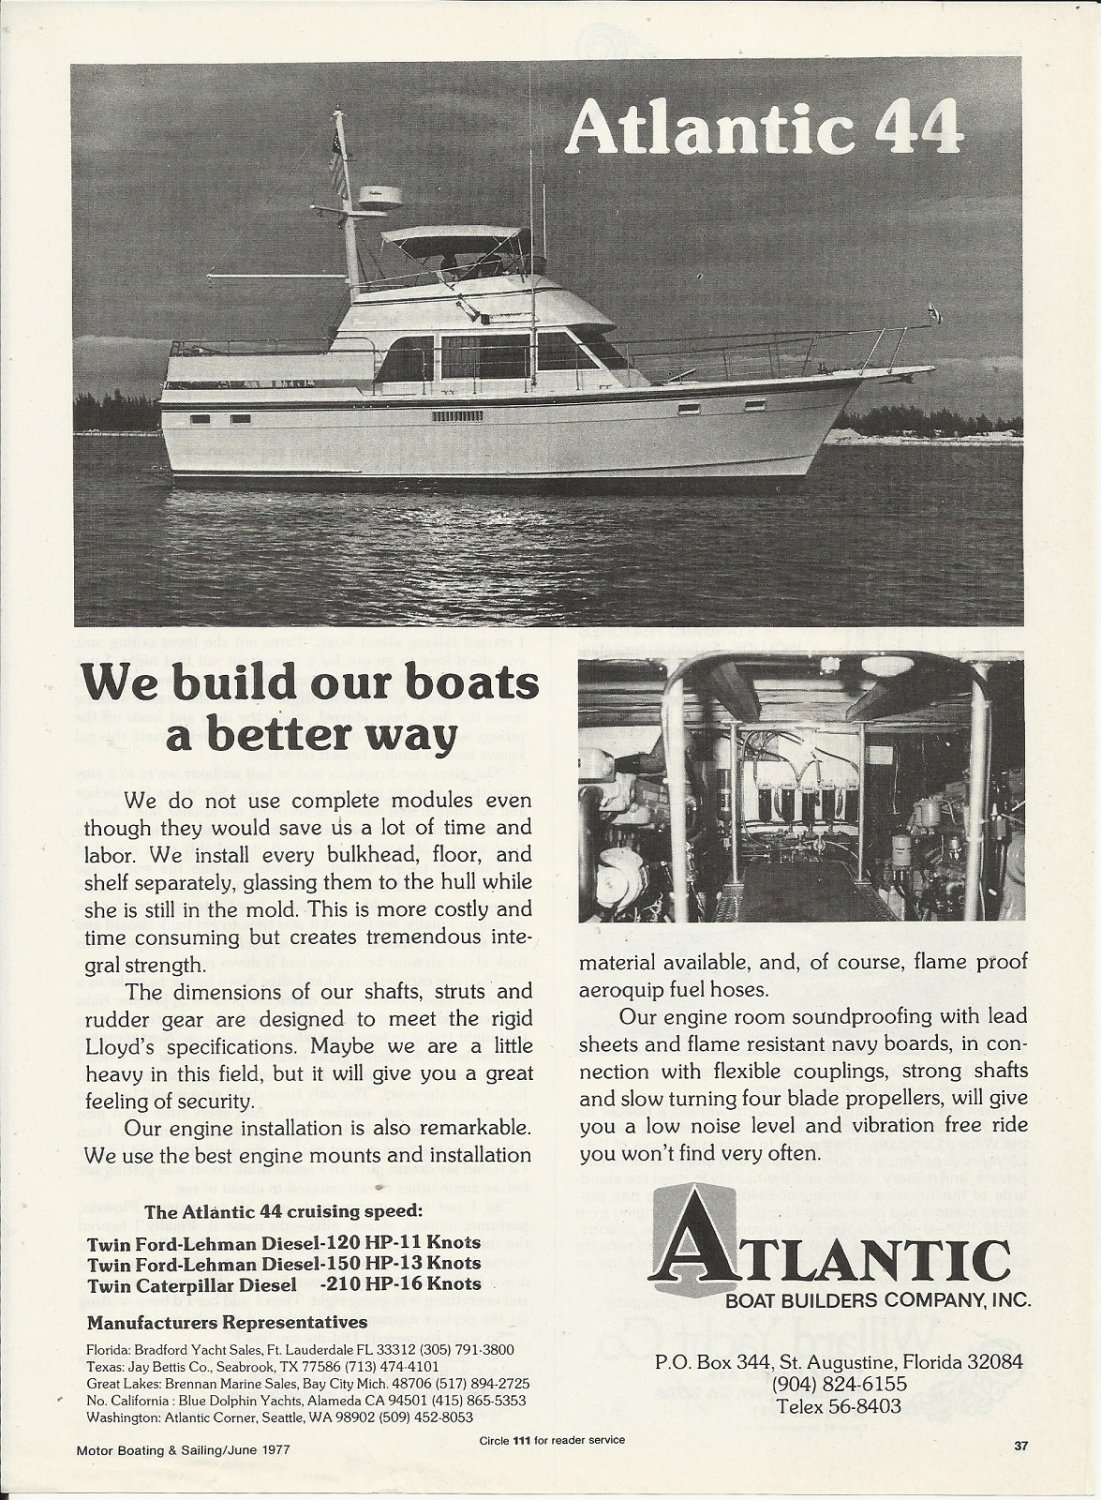 1977 Atlantic Boat Builders Co Ad- The Atlantic 44